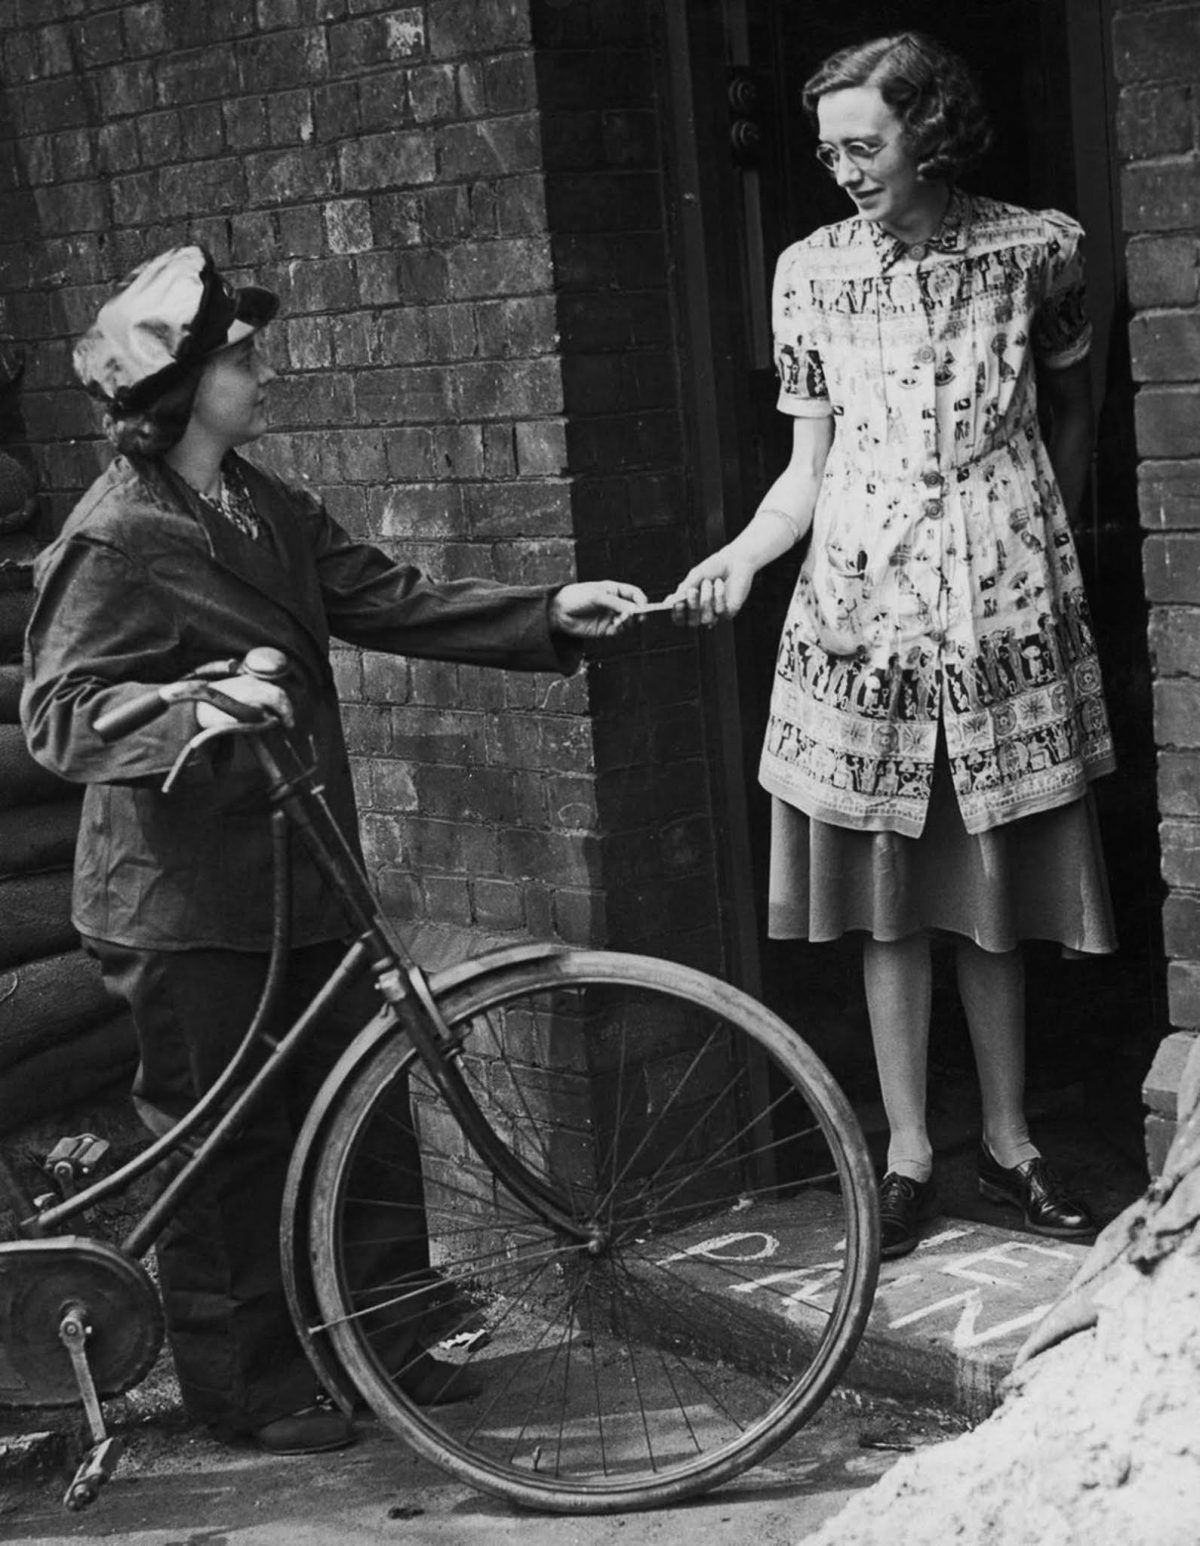 A woman on a bicycle hands another woman a message